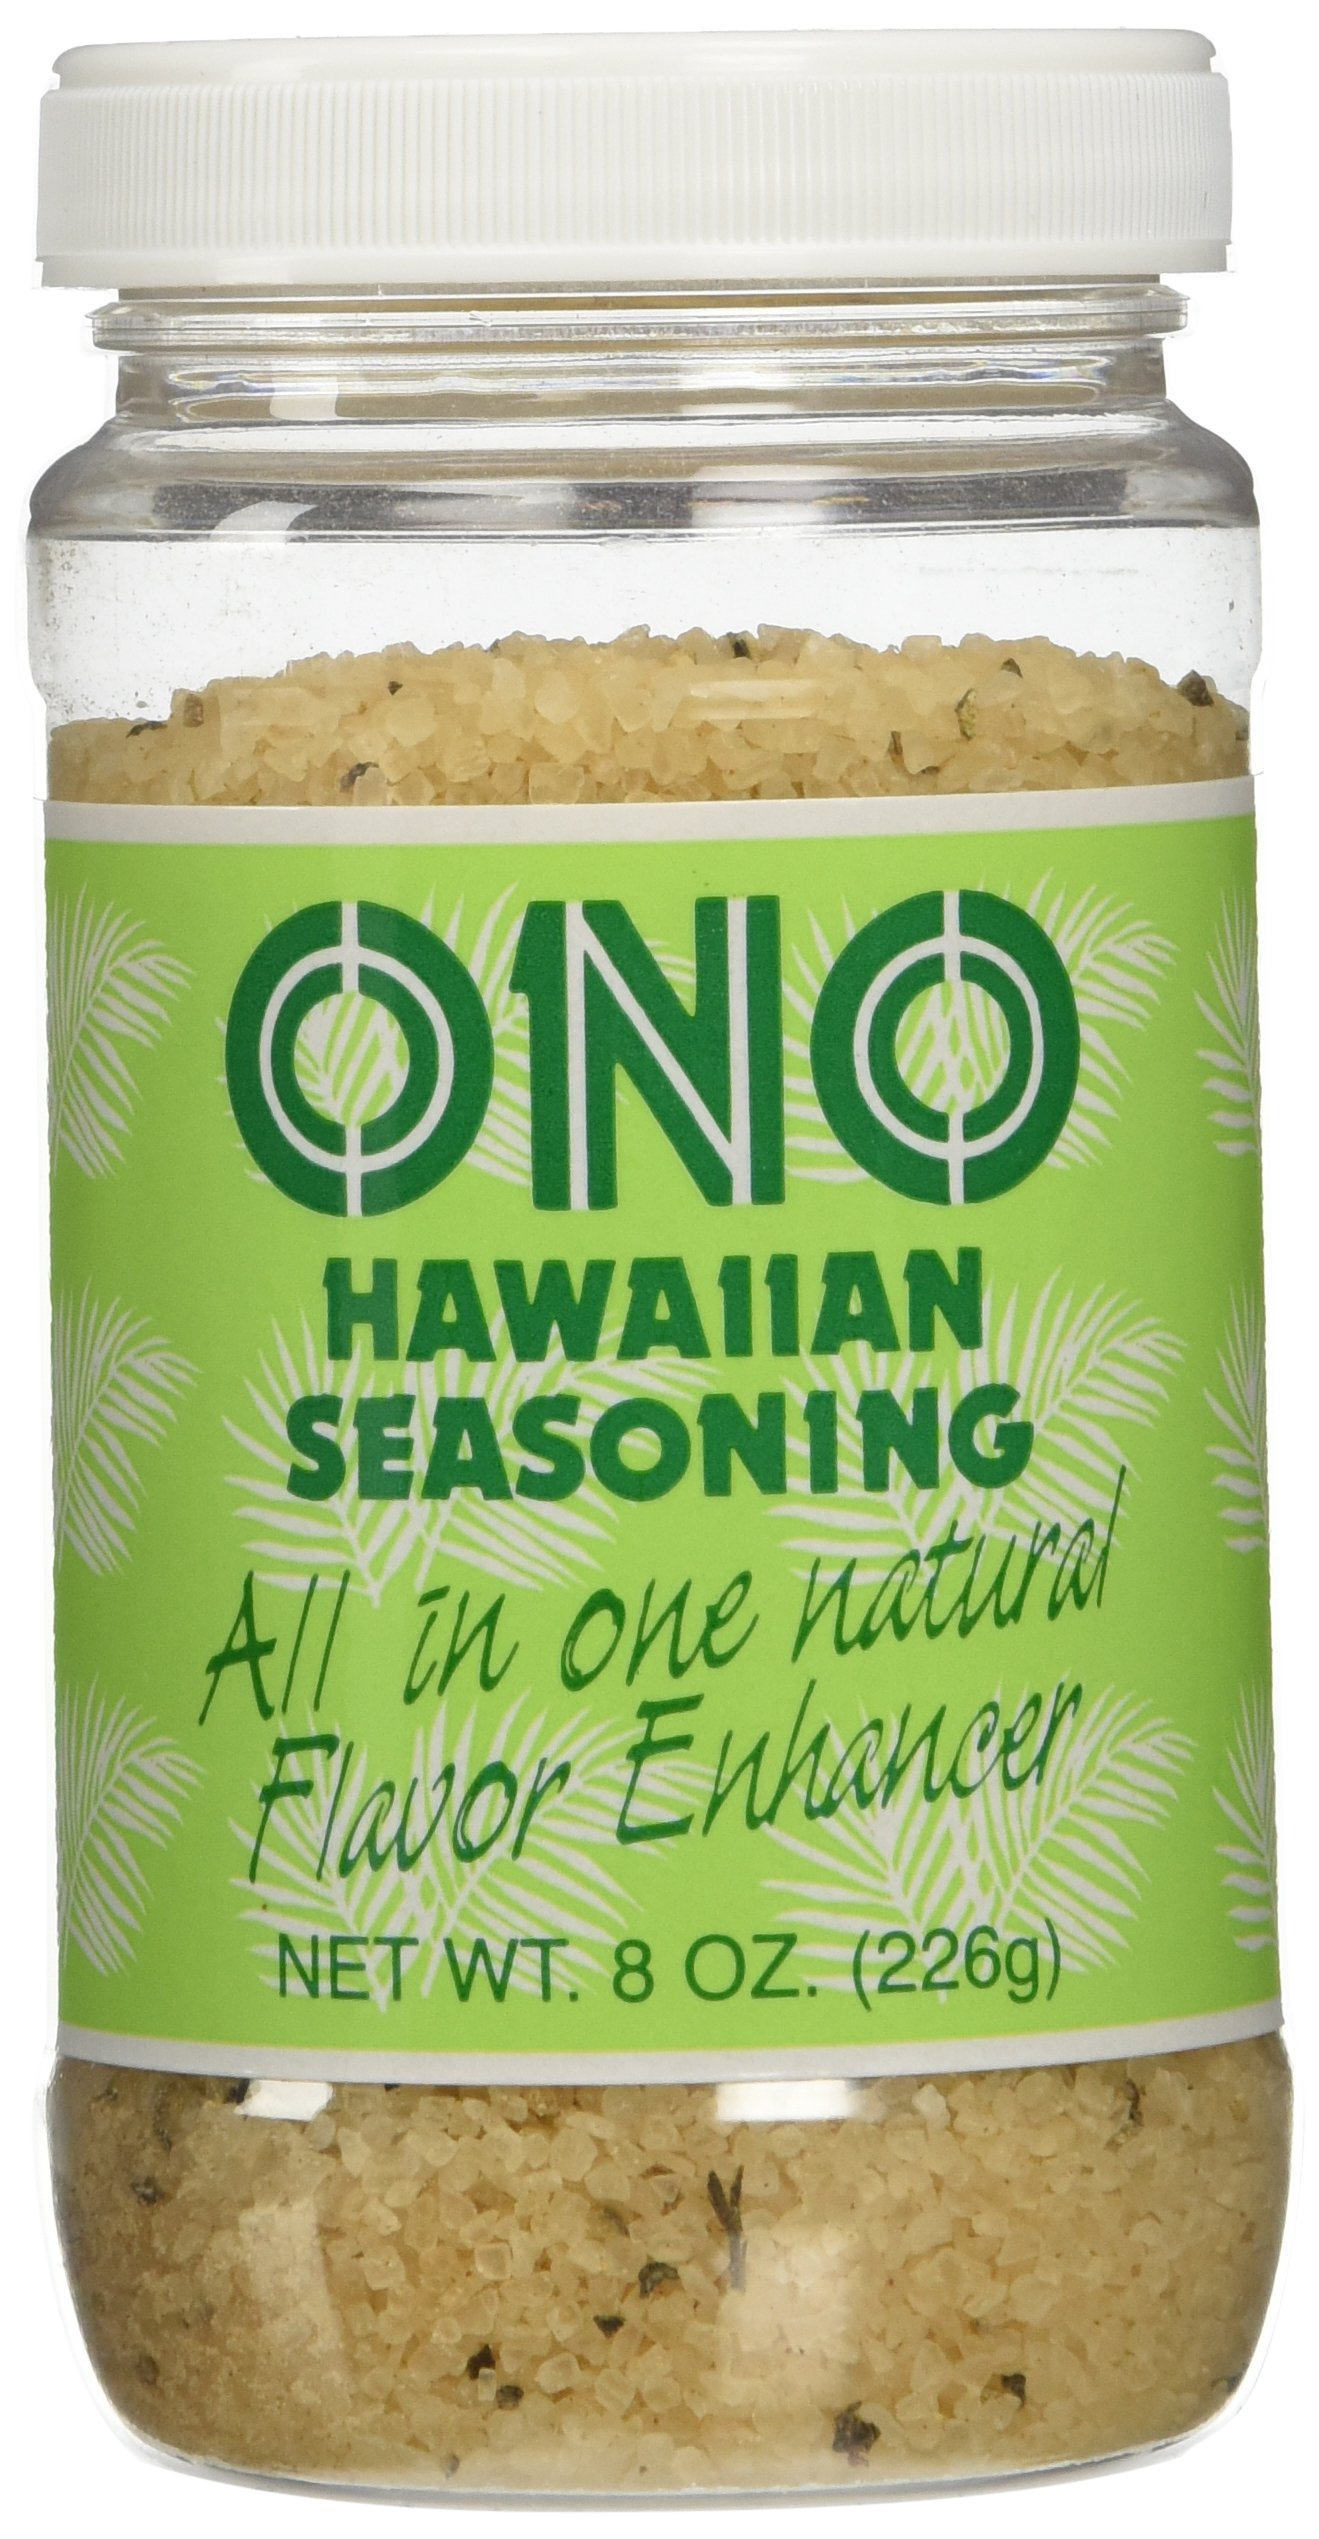 Ono Hawaiian Seasoning From Hawaii